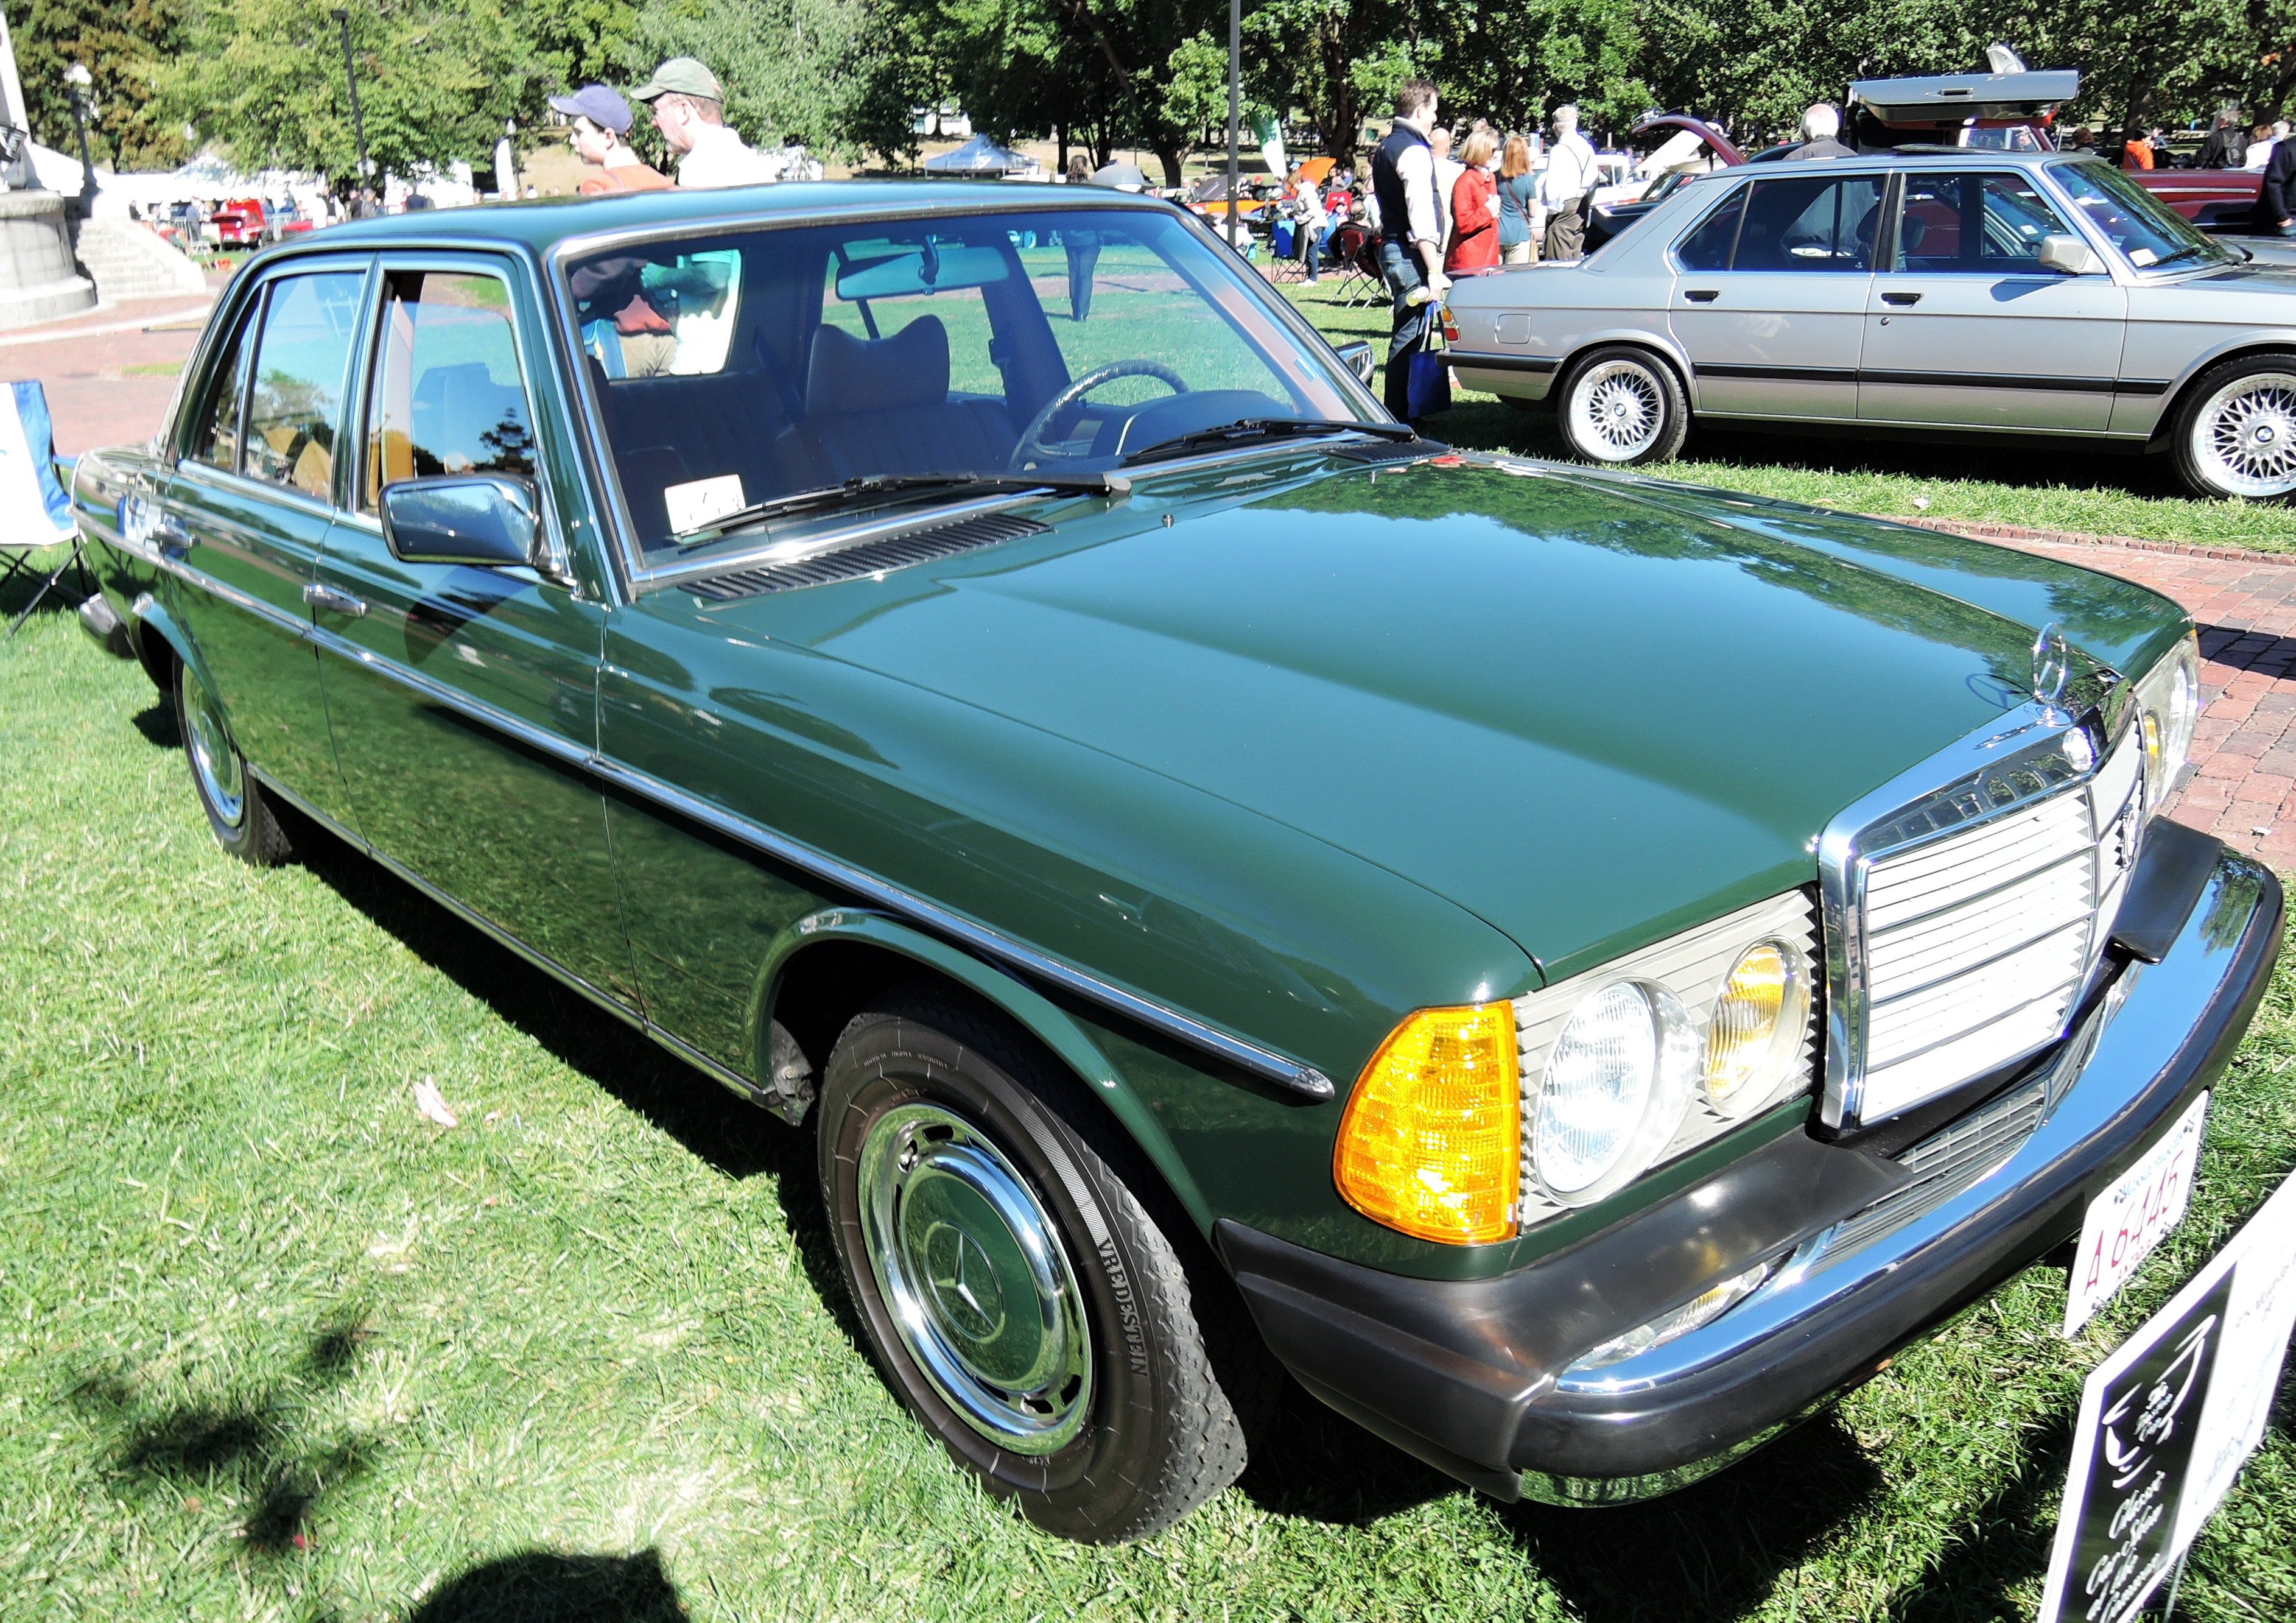 green 1978 Mercedes-Benz 230 - The Boston Cup on Boston Common